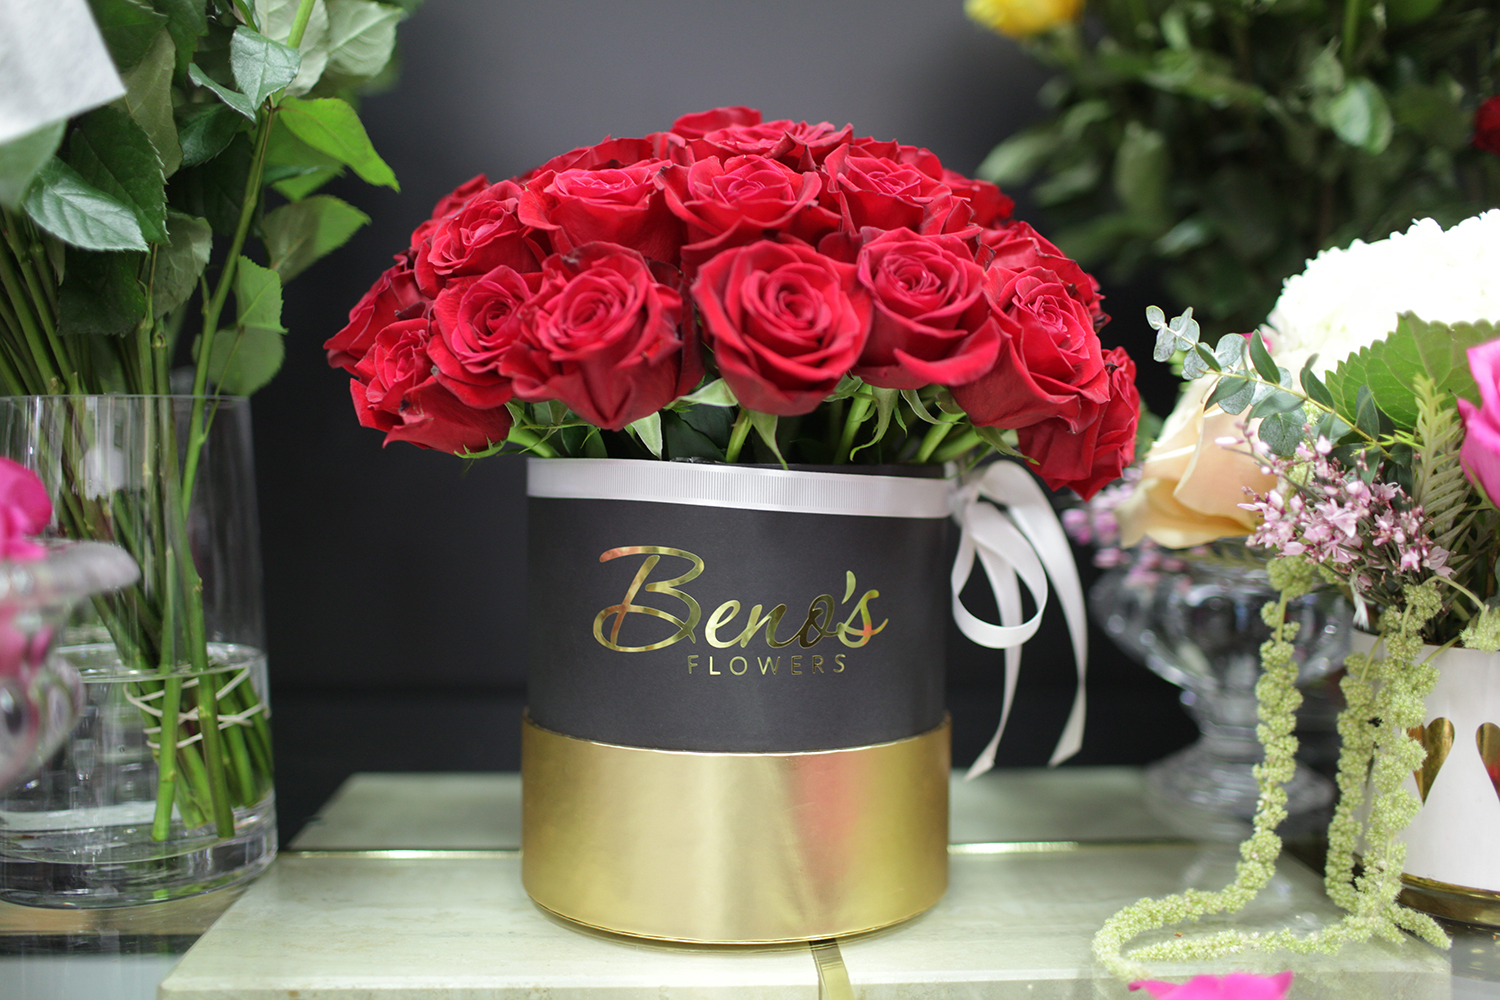 A bouquet of roses is seen at Beno's Flowers and Gifts on February 12, 2019.